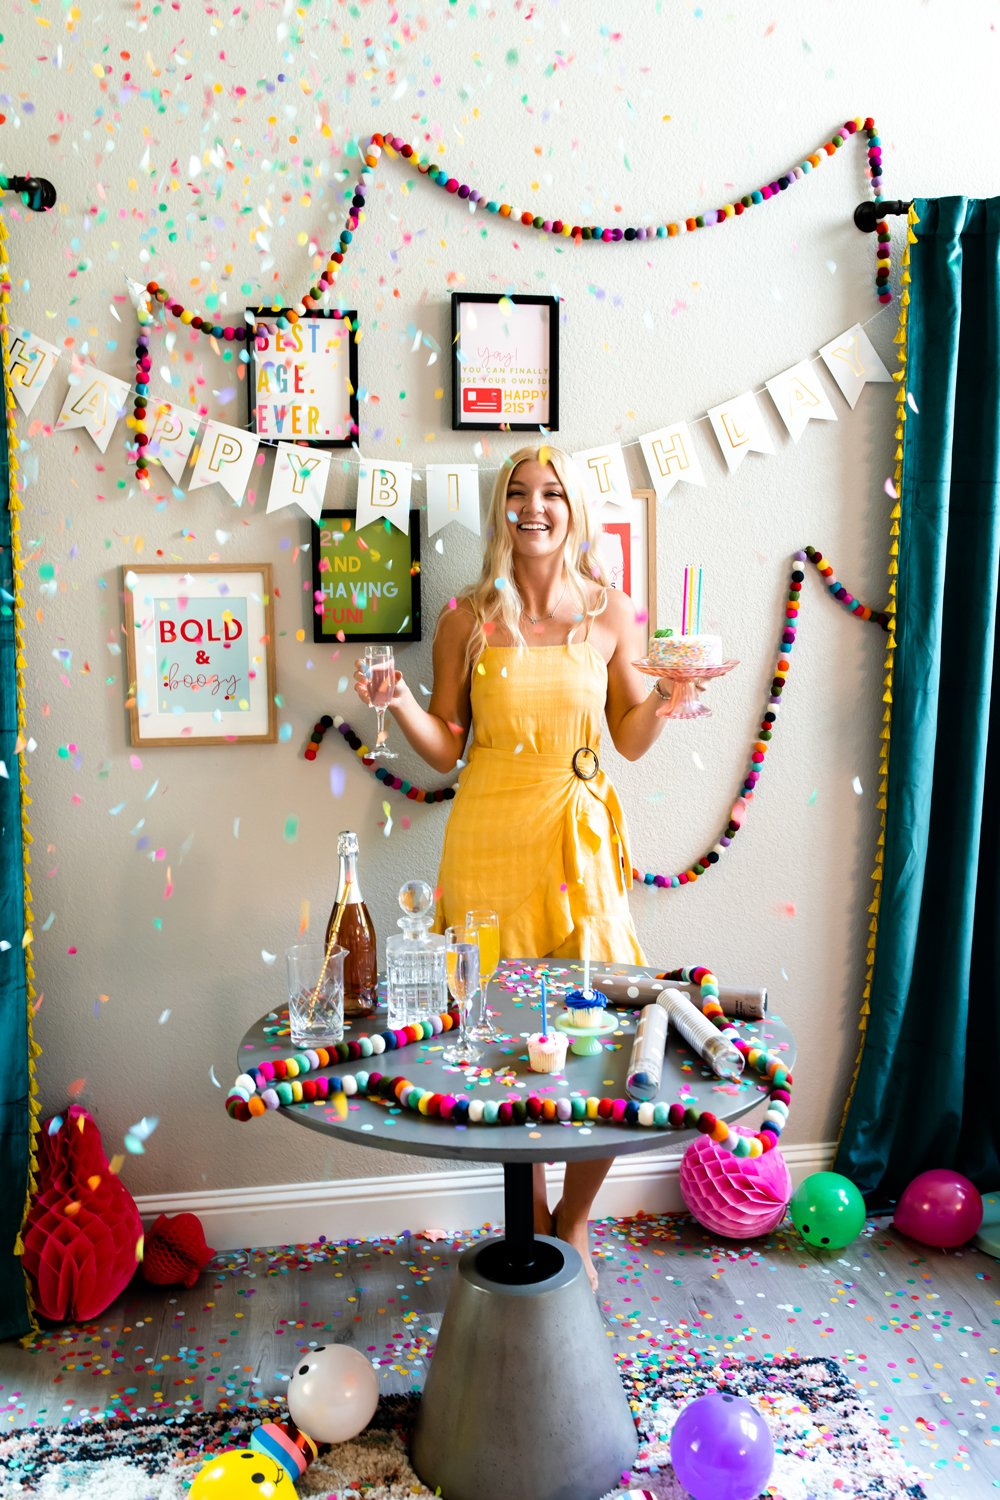 Best 21st birthday quotes party decor